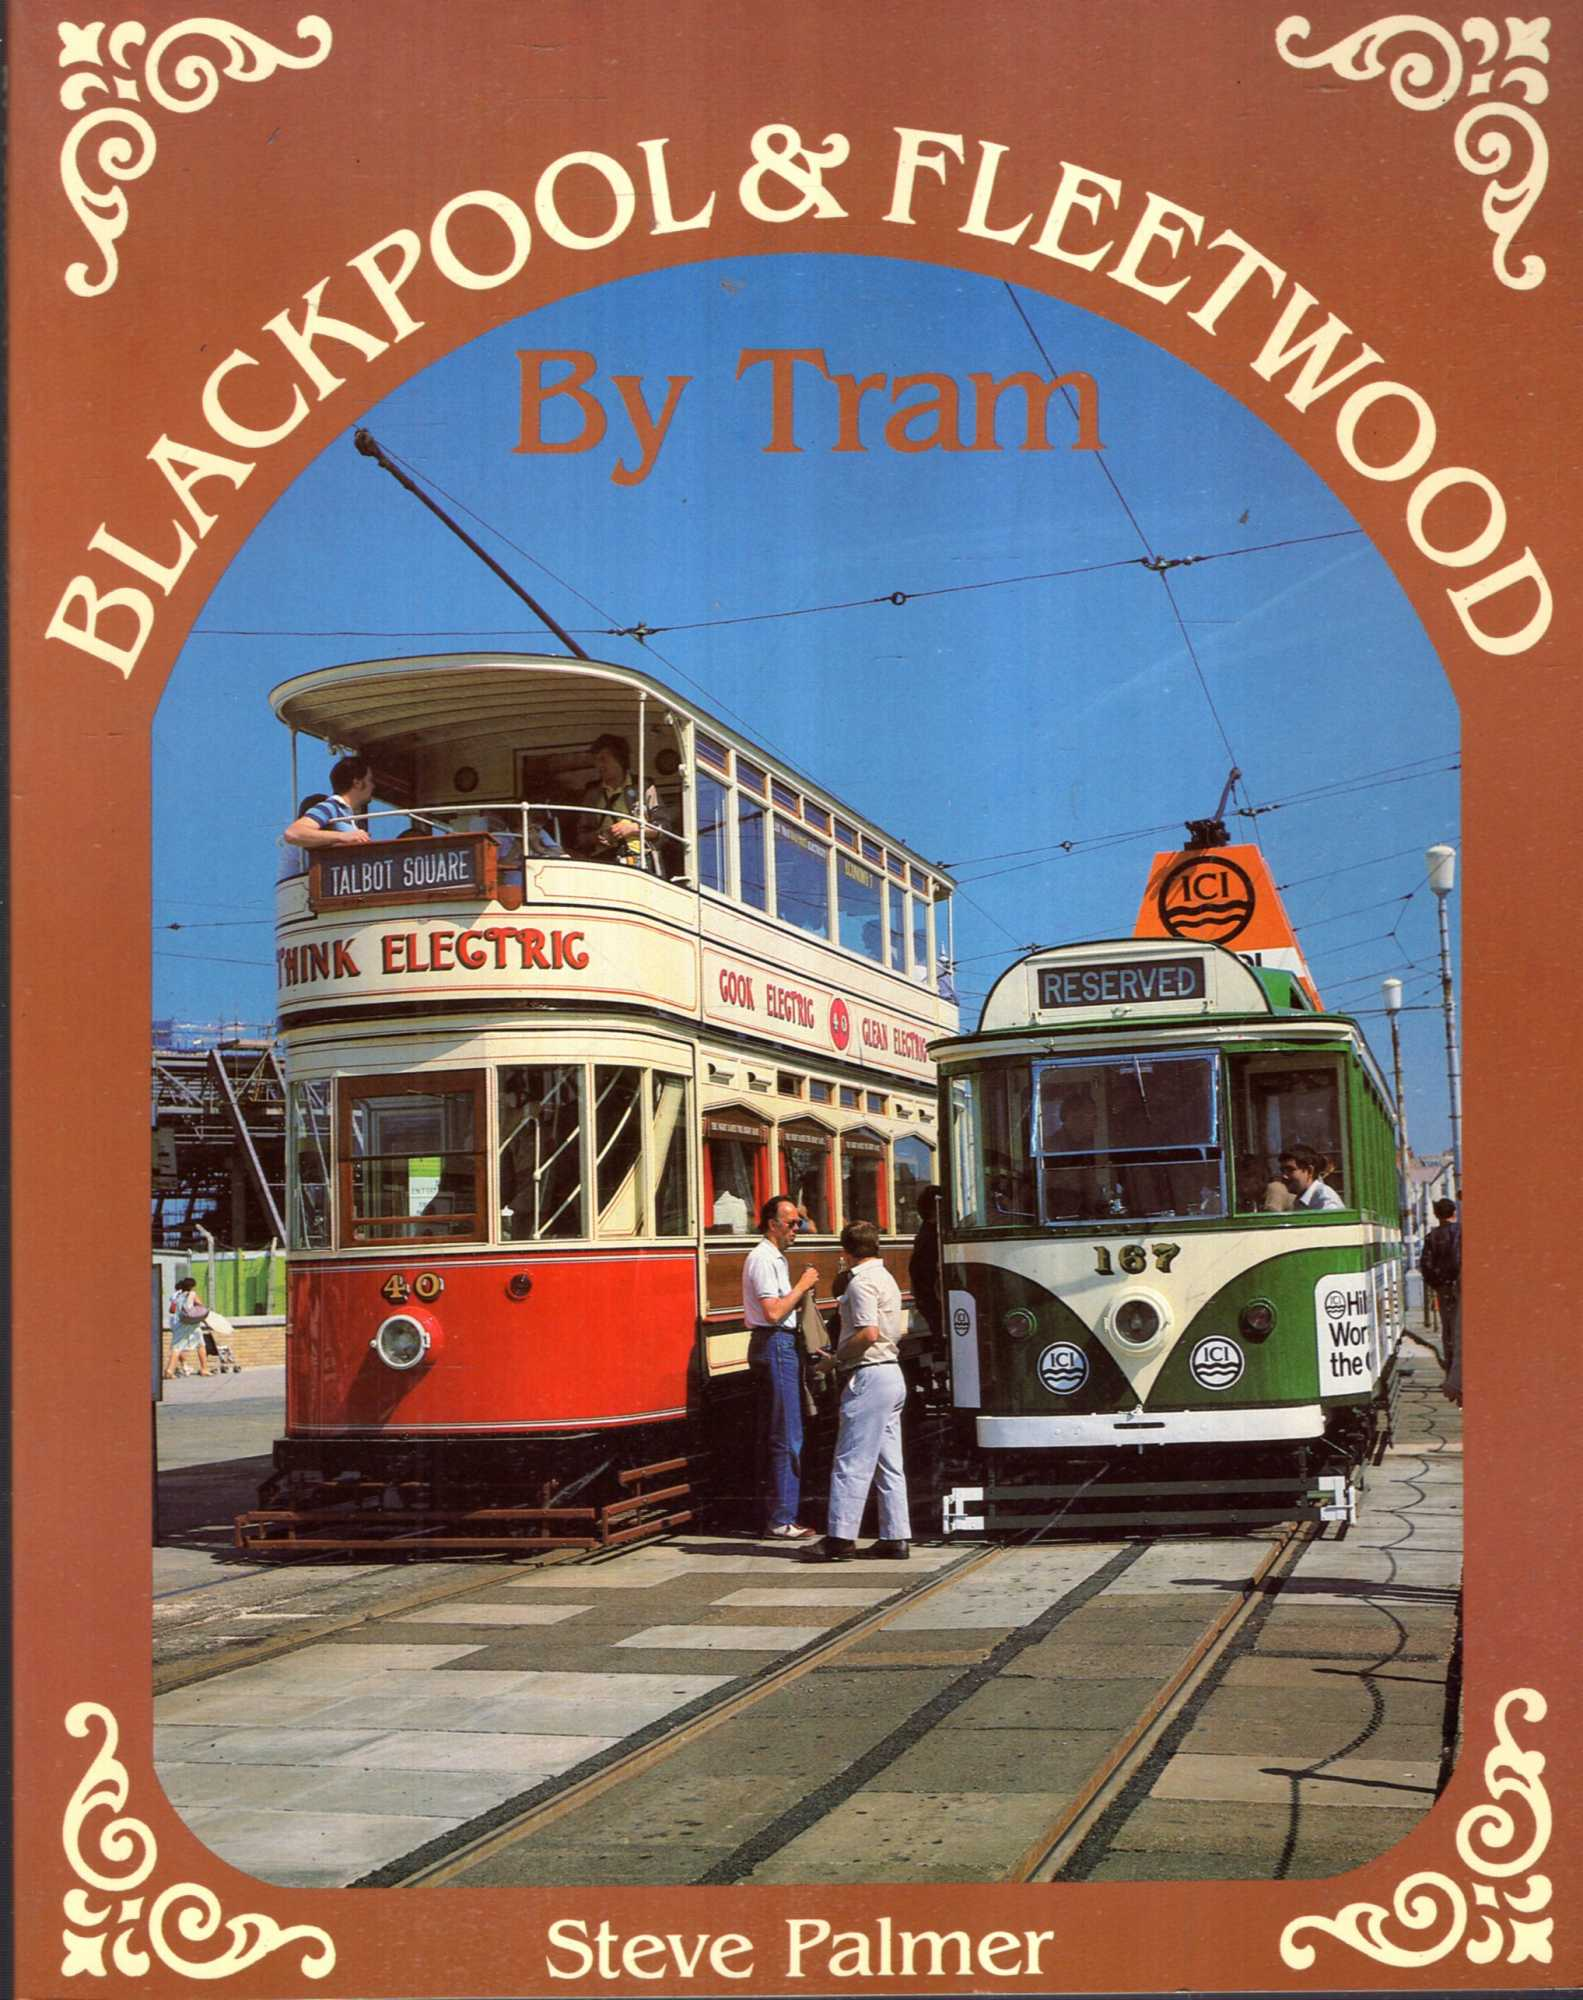 Image for Blackpool and Fleetwood by Tram